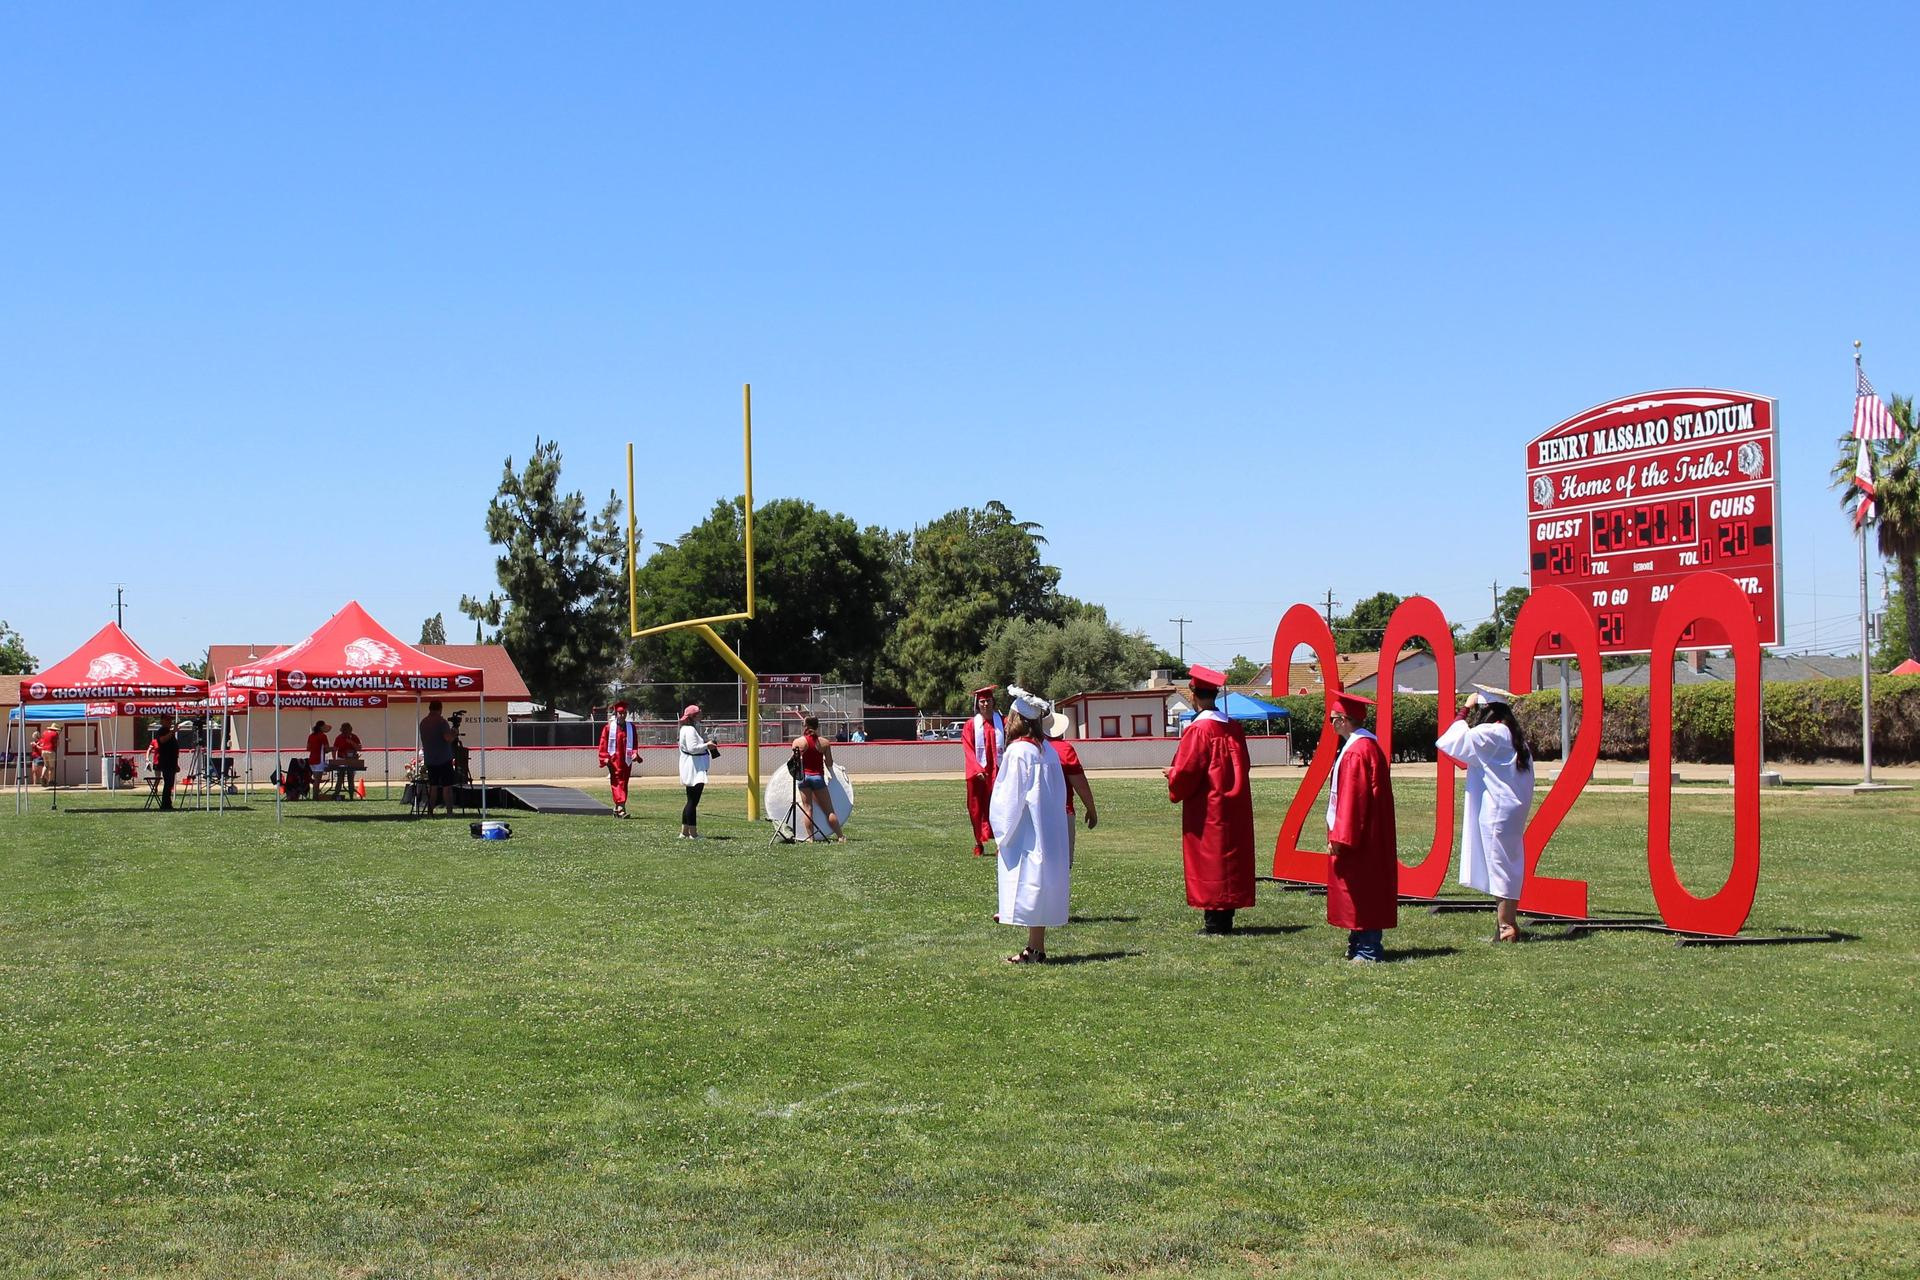 A panoramic field view of the graduation setup